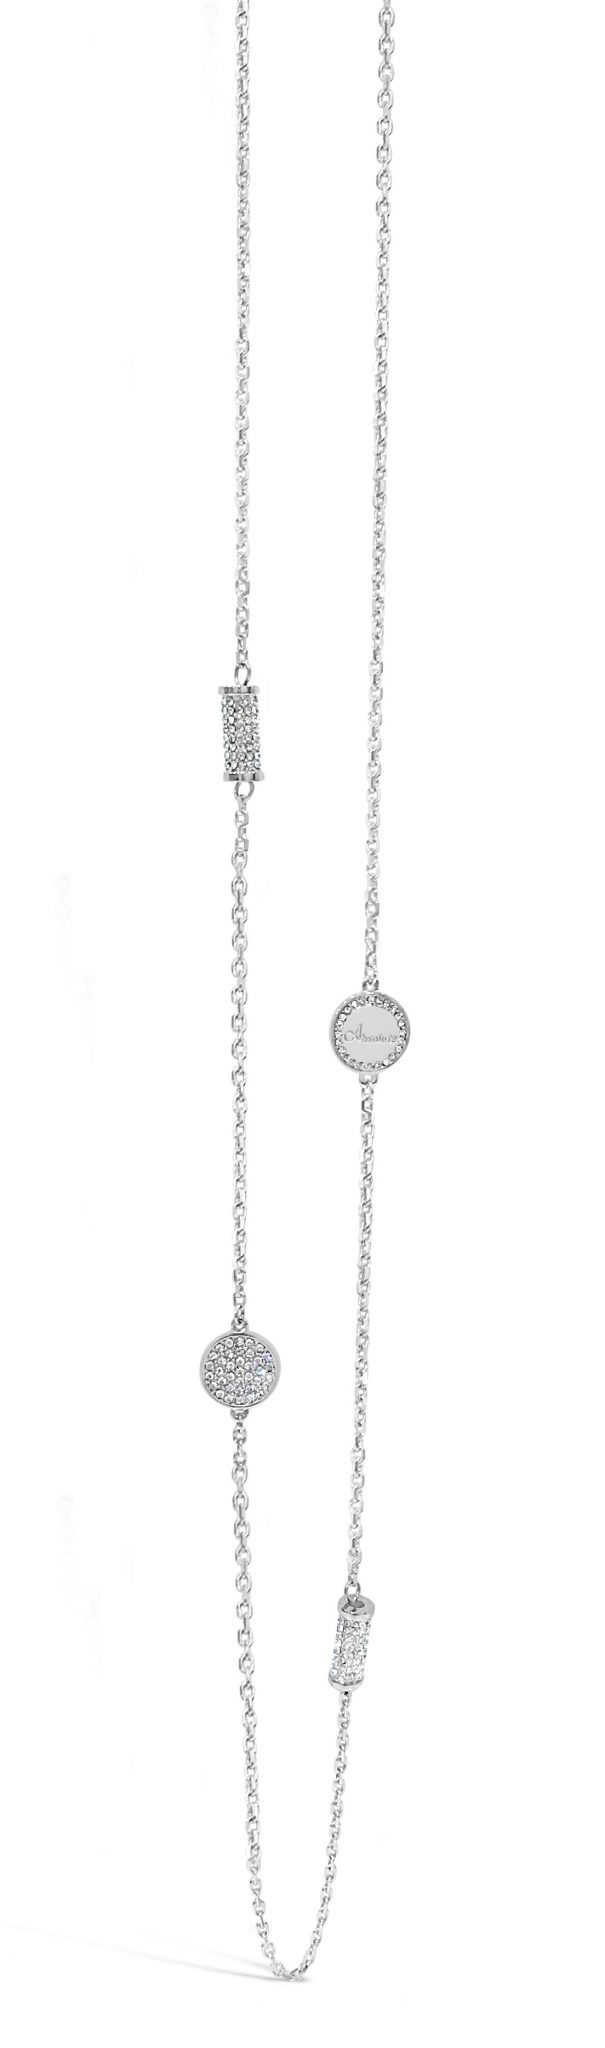 ABSOLUTE N584SL NECKLACE